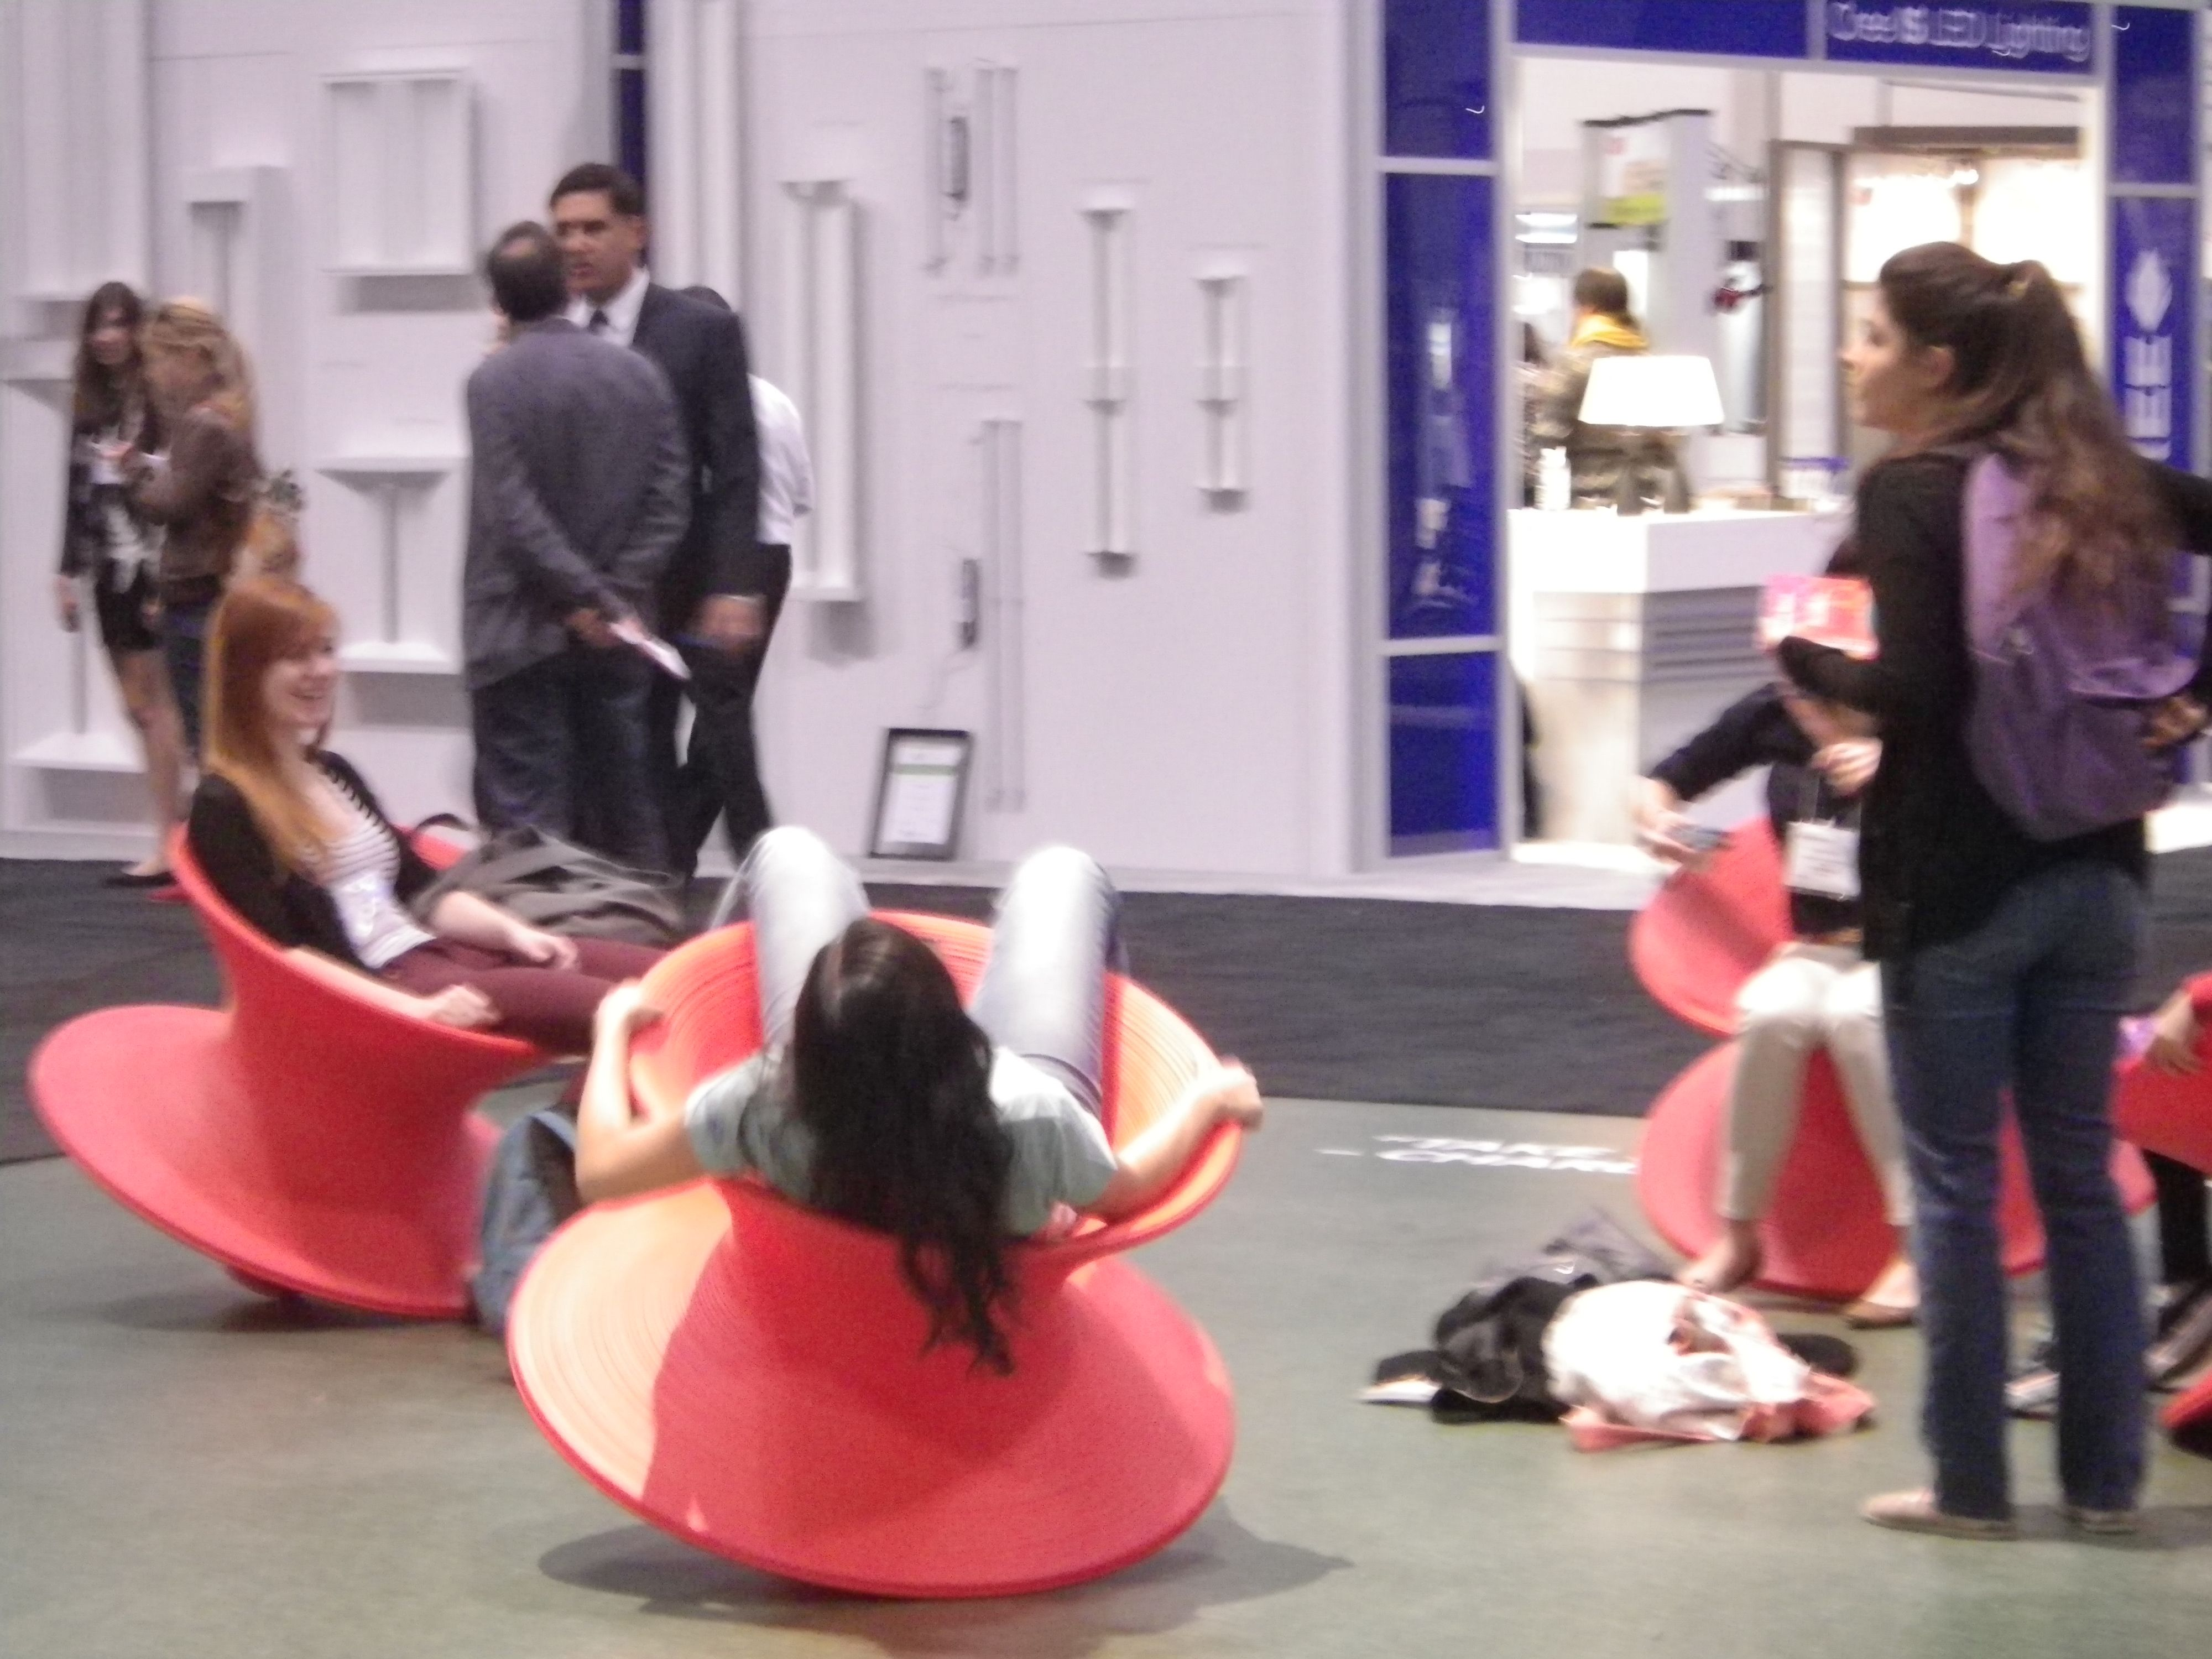 IIDEX 2013 The second surprise of the show Spun chairs in the Herman Miller & IIDEX 2013: The second surprise of the show Spun chairs in the ...